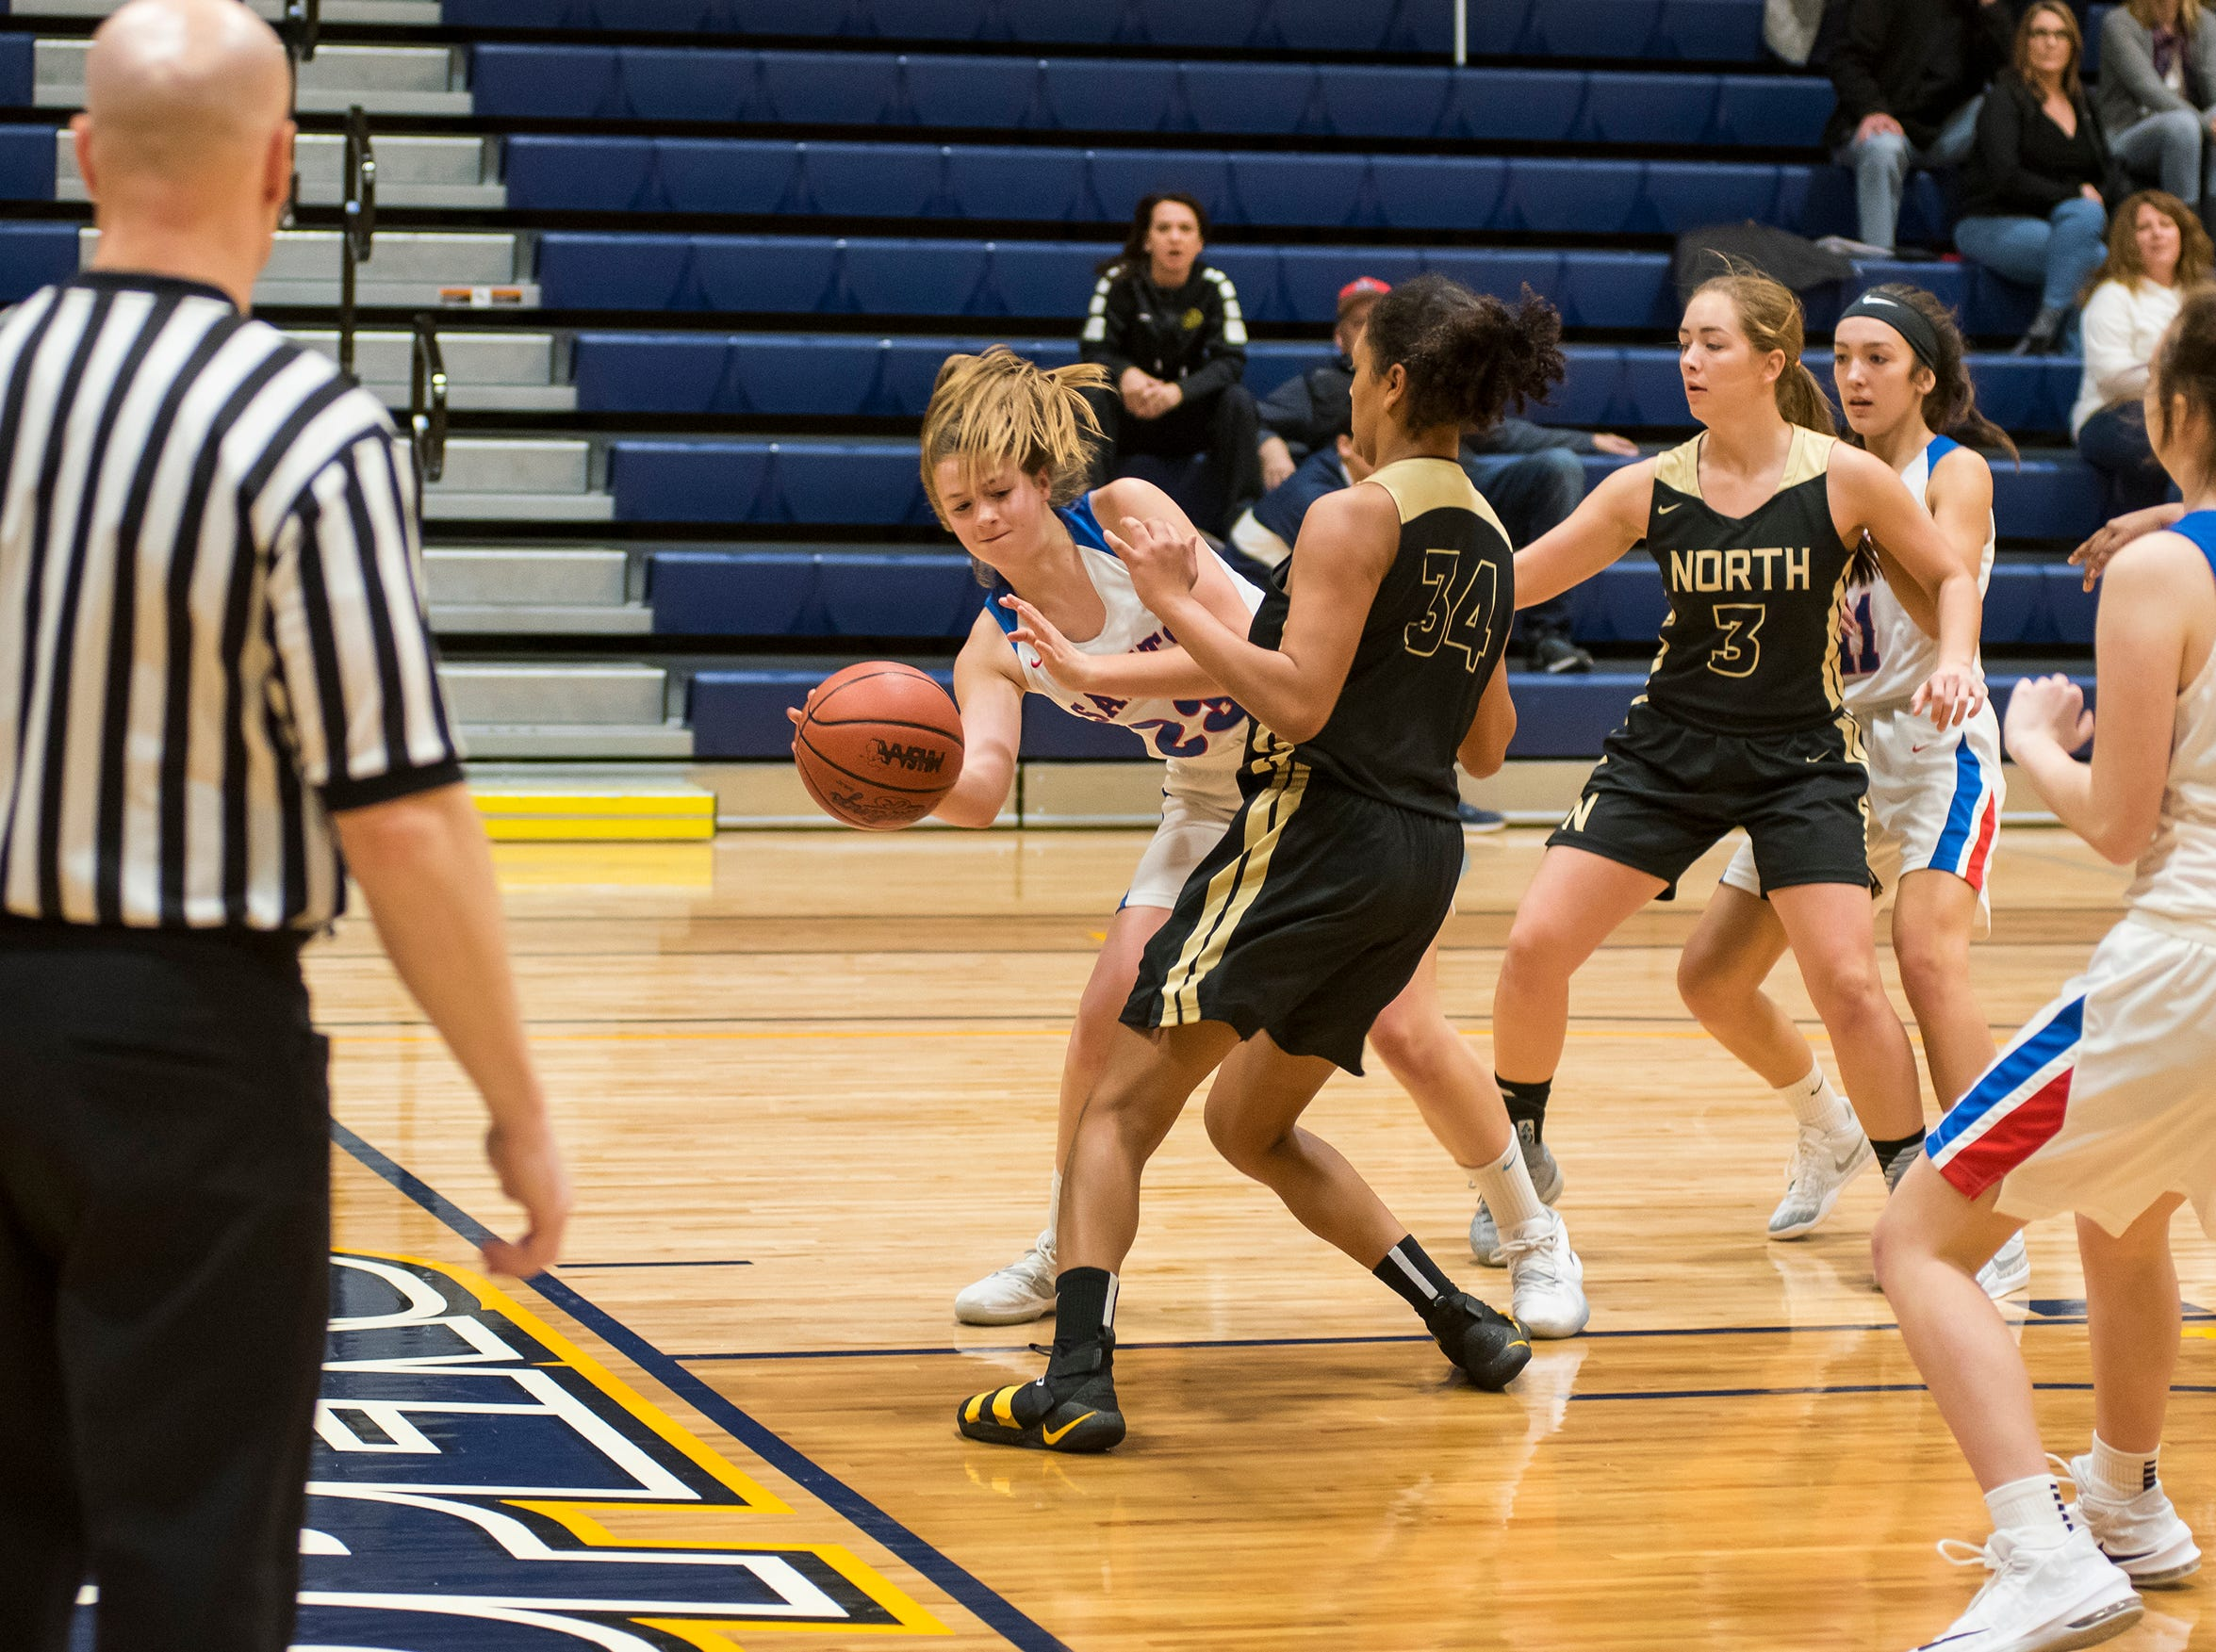 St. CLair High School forward Annaliese Lamontagne (23) passes the ball past L'Anse Creuse North High School forward Sapphire Conway during their SC4 Holiday Basketball Showcase game Thursday, Dec. 27, 2018 at the SC4 Fieldhouse.